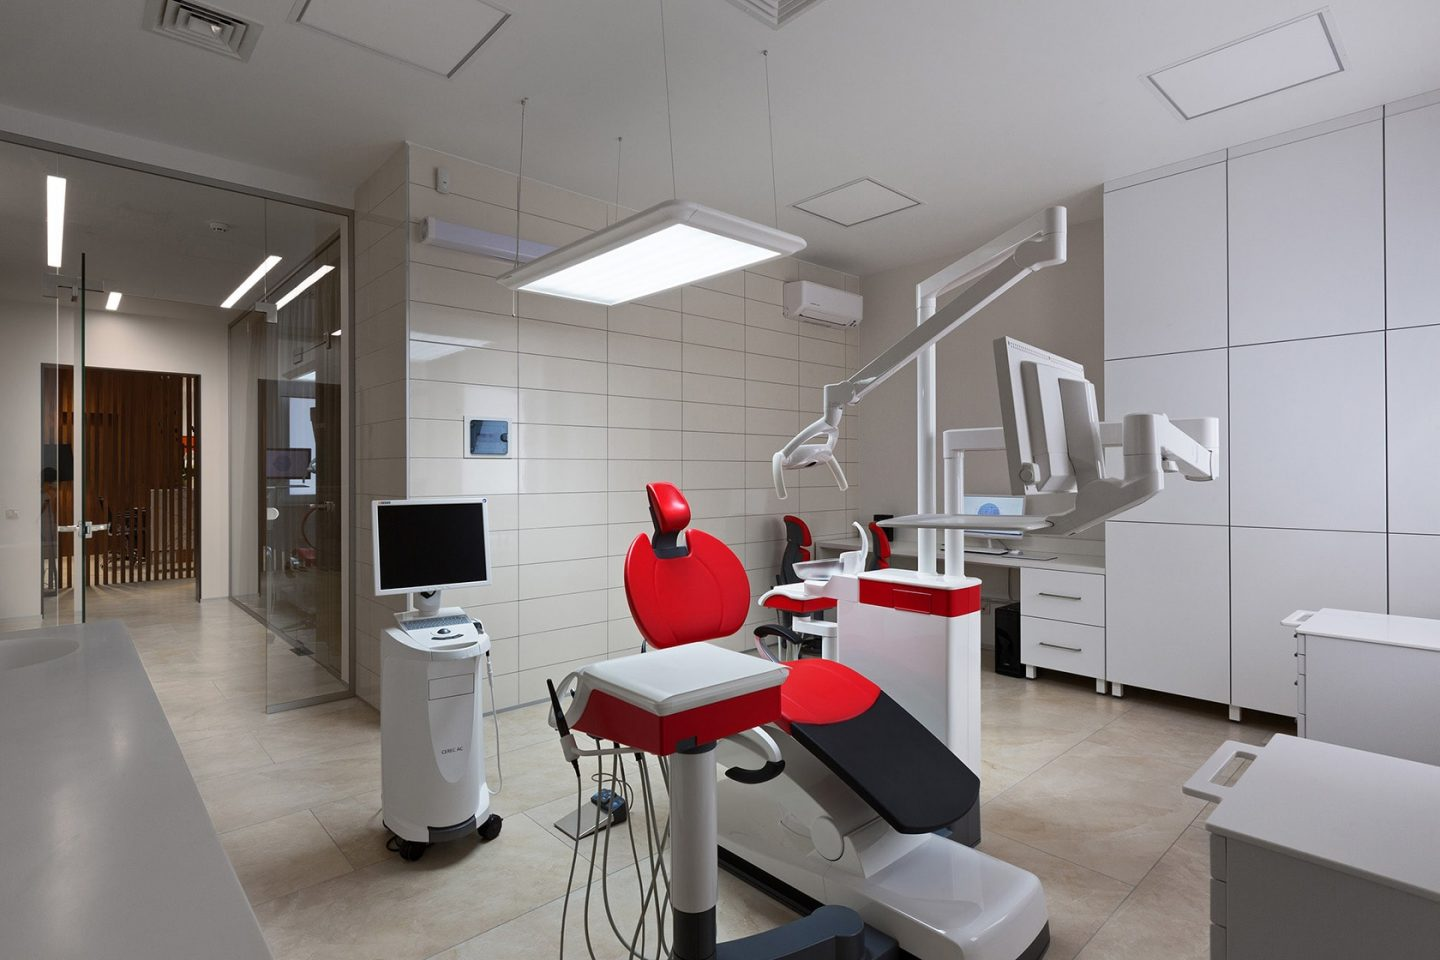 thesis dental clinic University of minnesota dental clinics provide general and specialty dental care in association with the school of dentistry's educational programs.